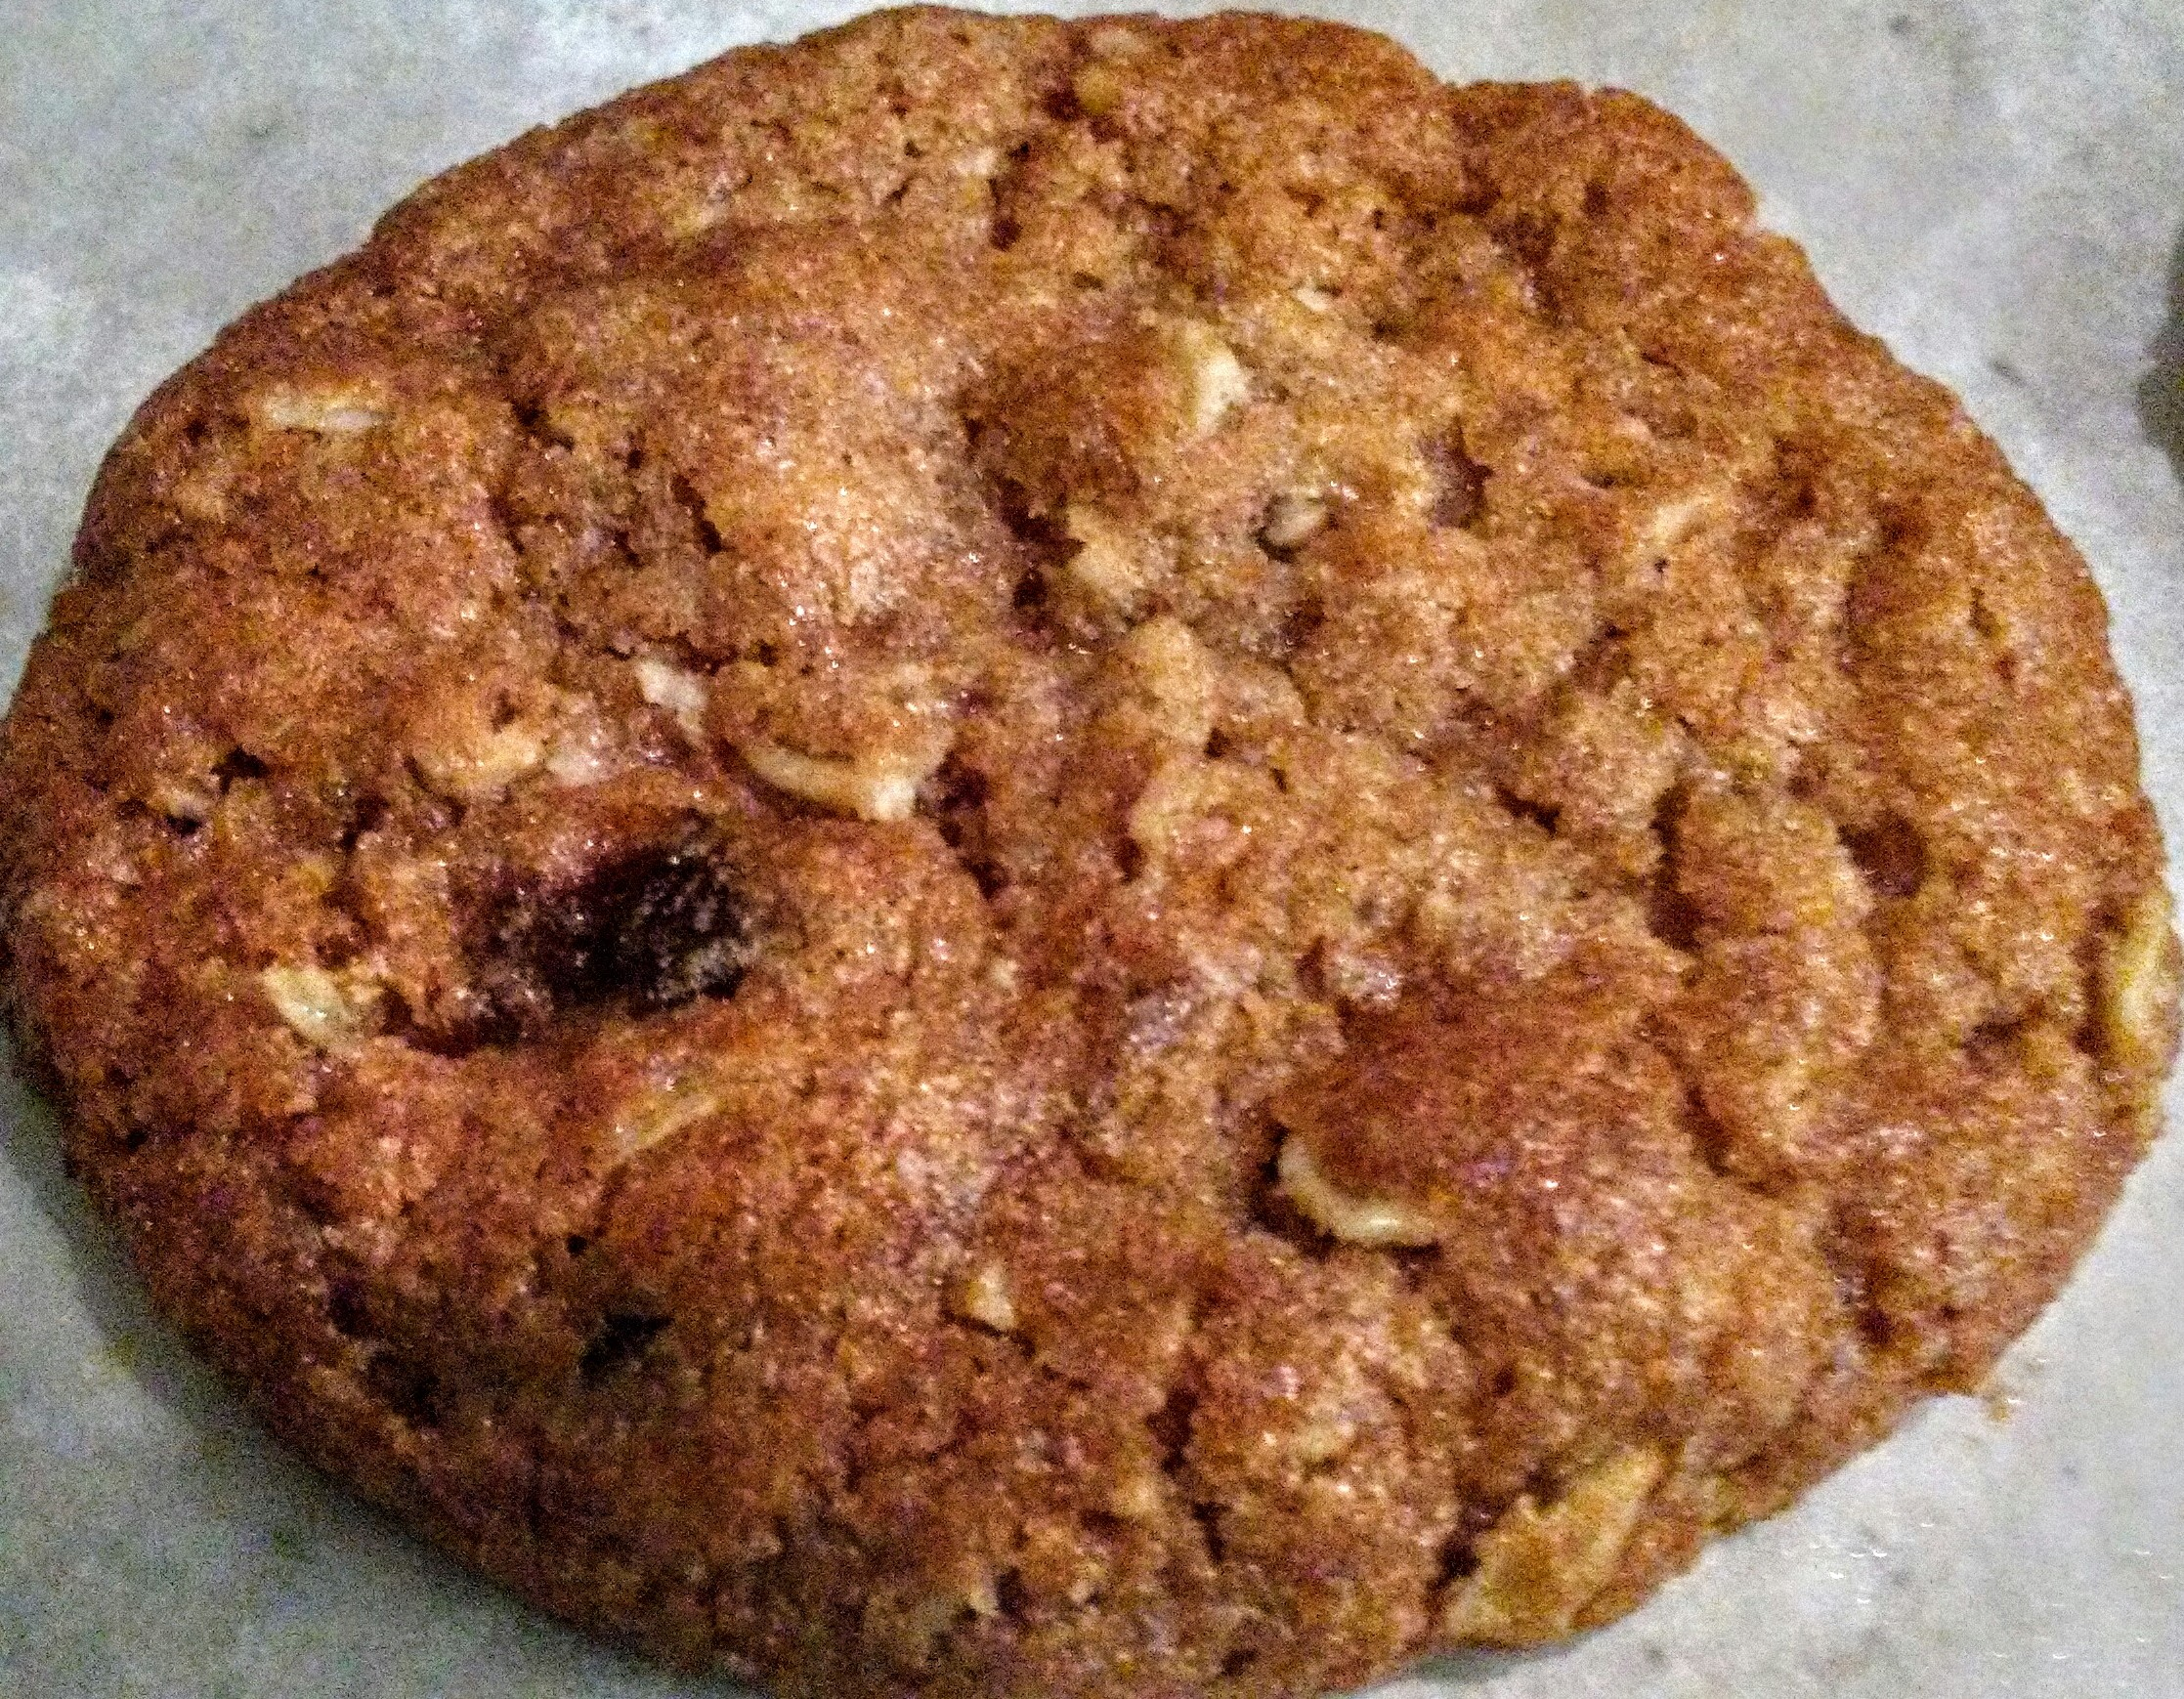 Try Our Fresh Baked Oatmeal Raisin Cookies